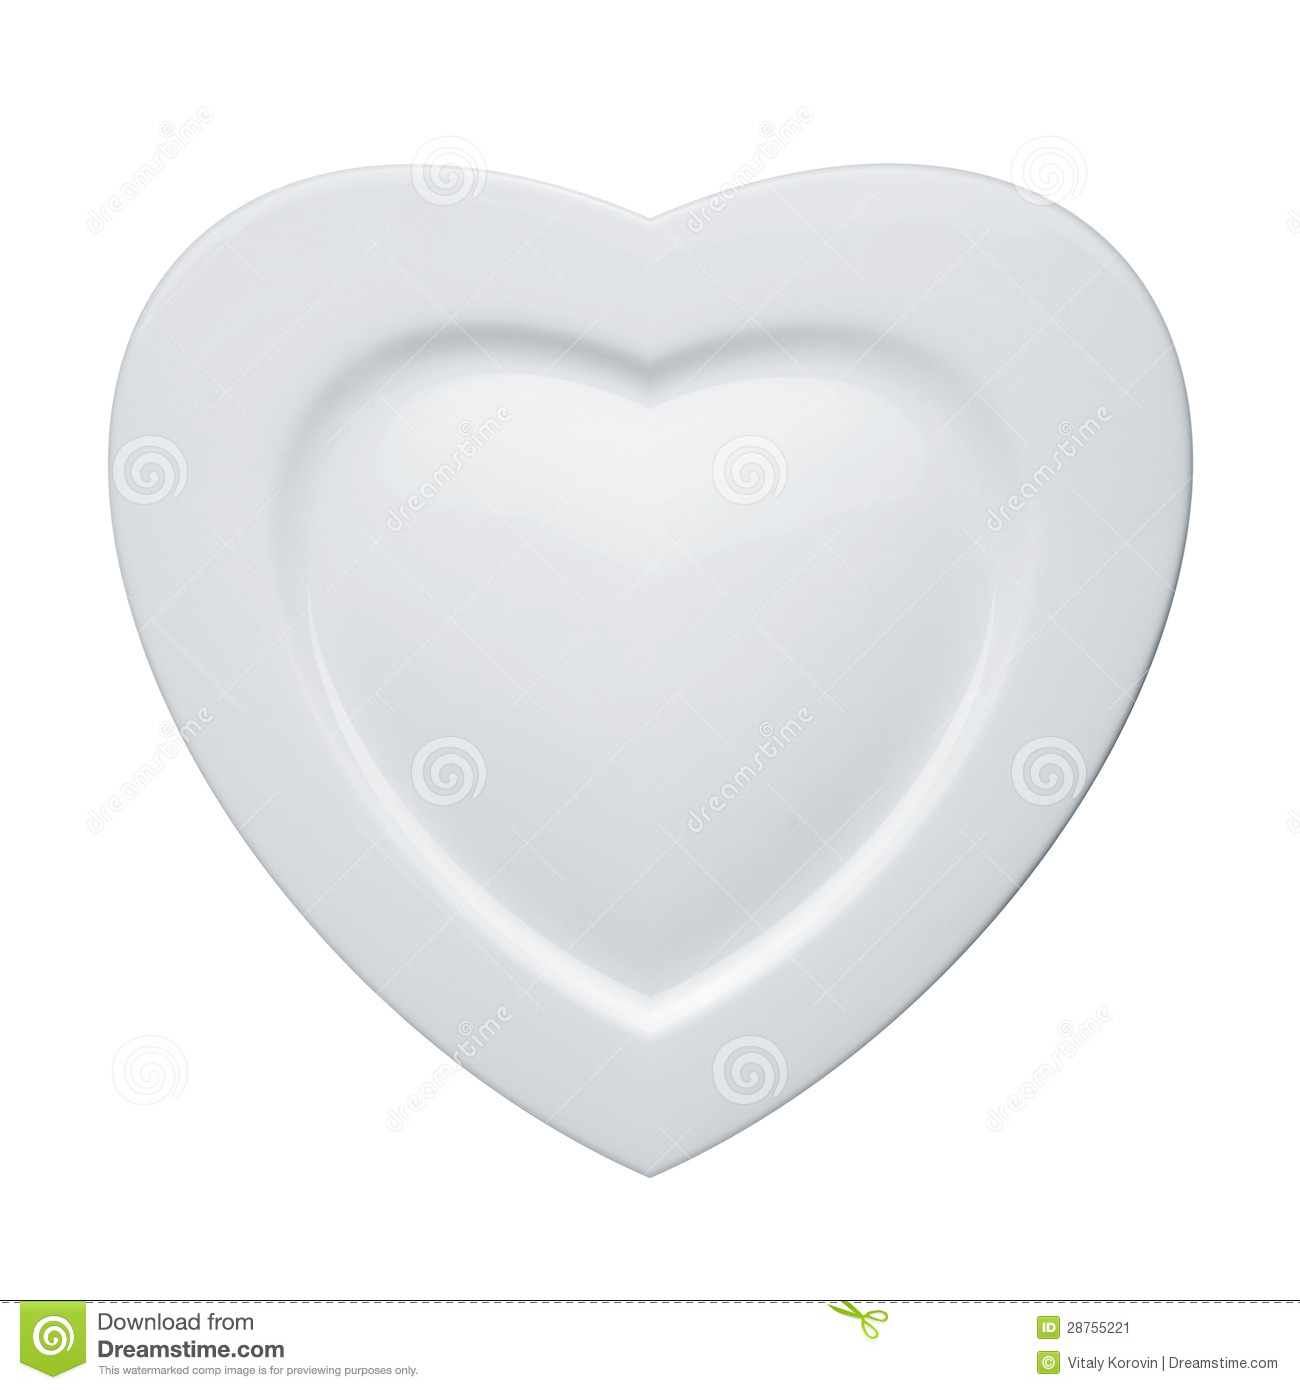 Love Heart Shaped Plate Stock Image - Image 28755221  sc 1 st  Crafthubs & Love Plate \u2014 Crafthubs